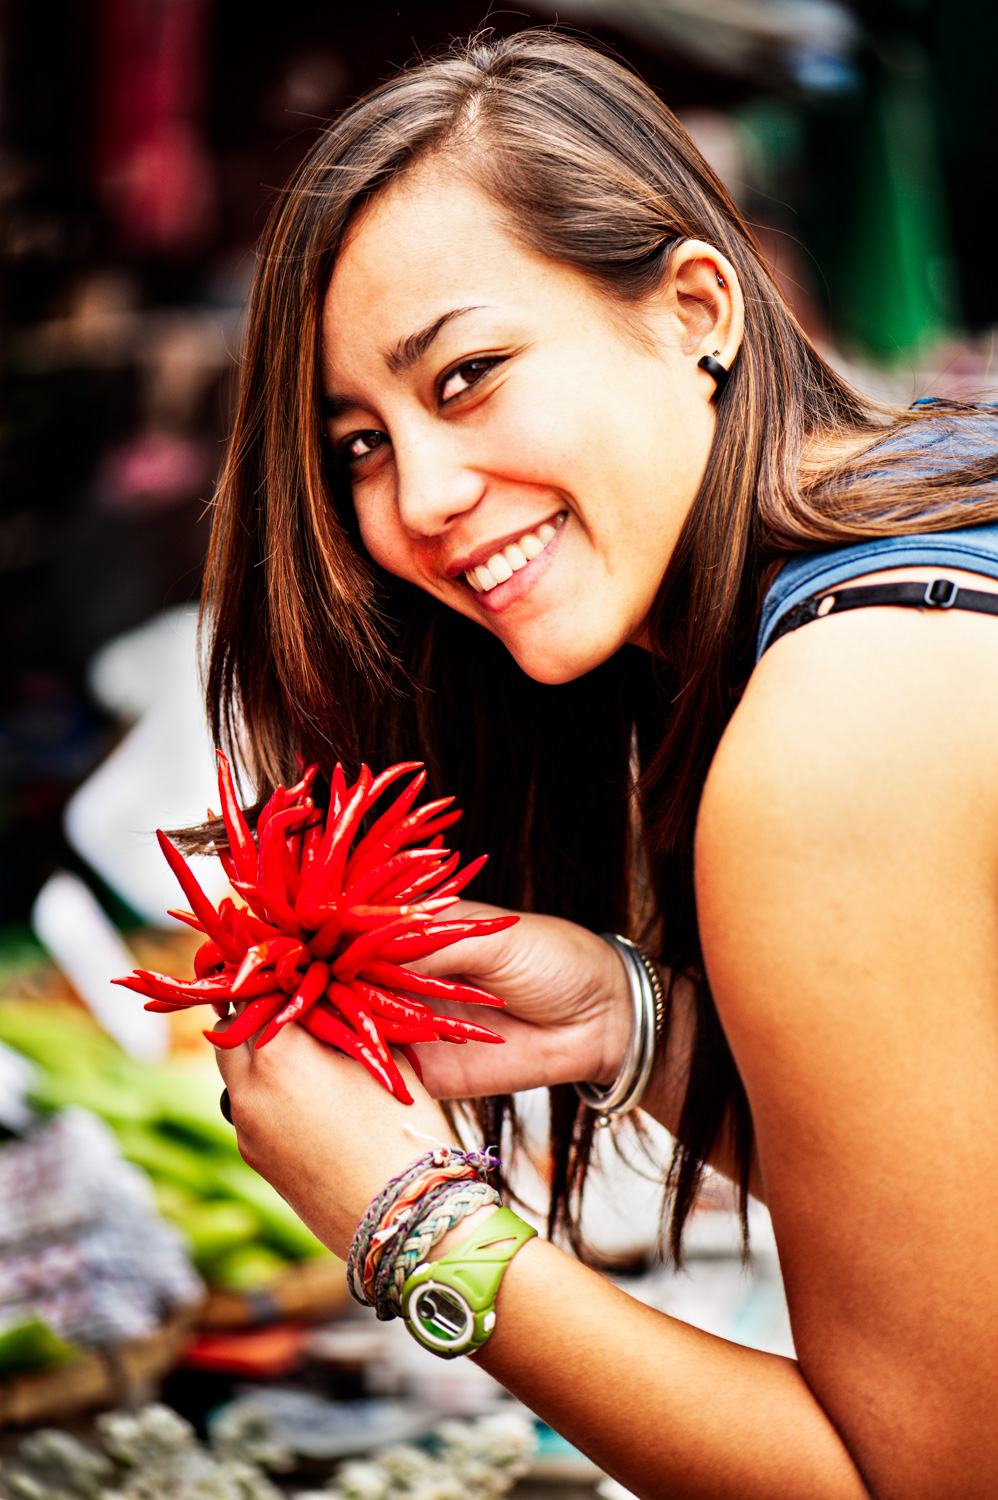 Woman holding chilli pepper as a prop for making someone comfortable